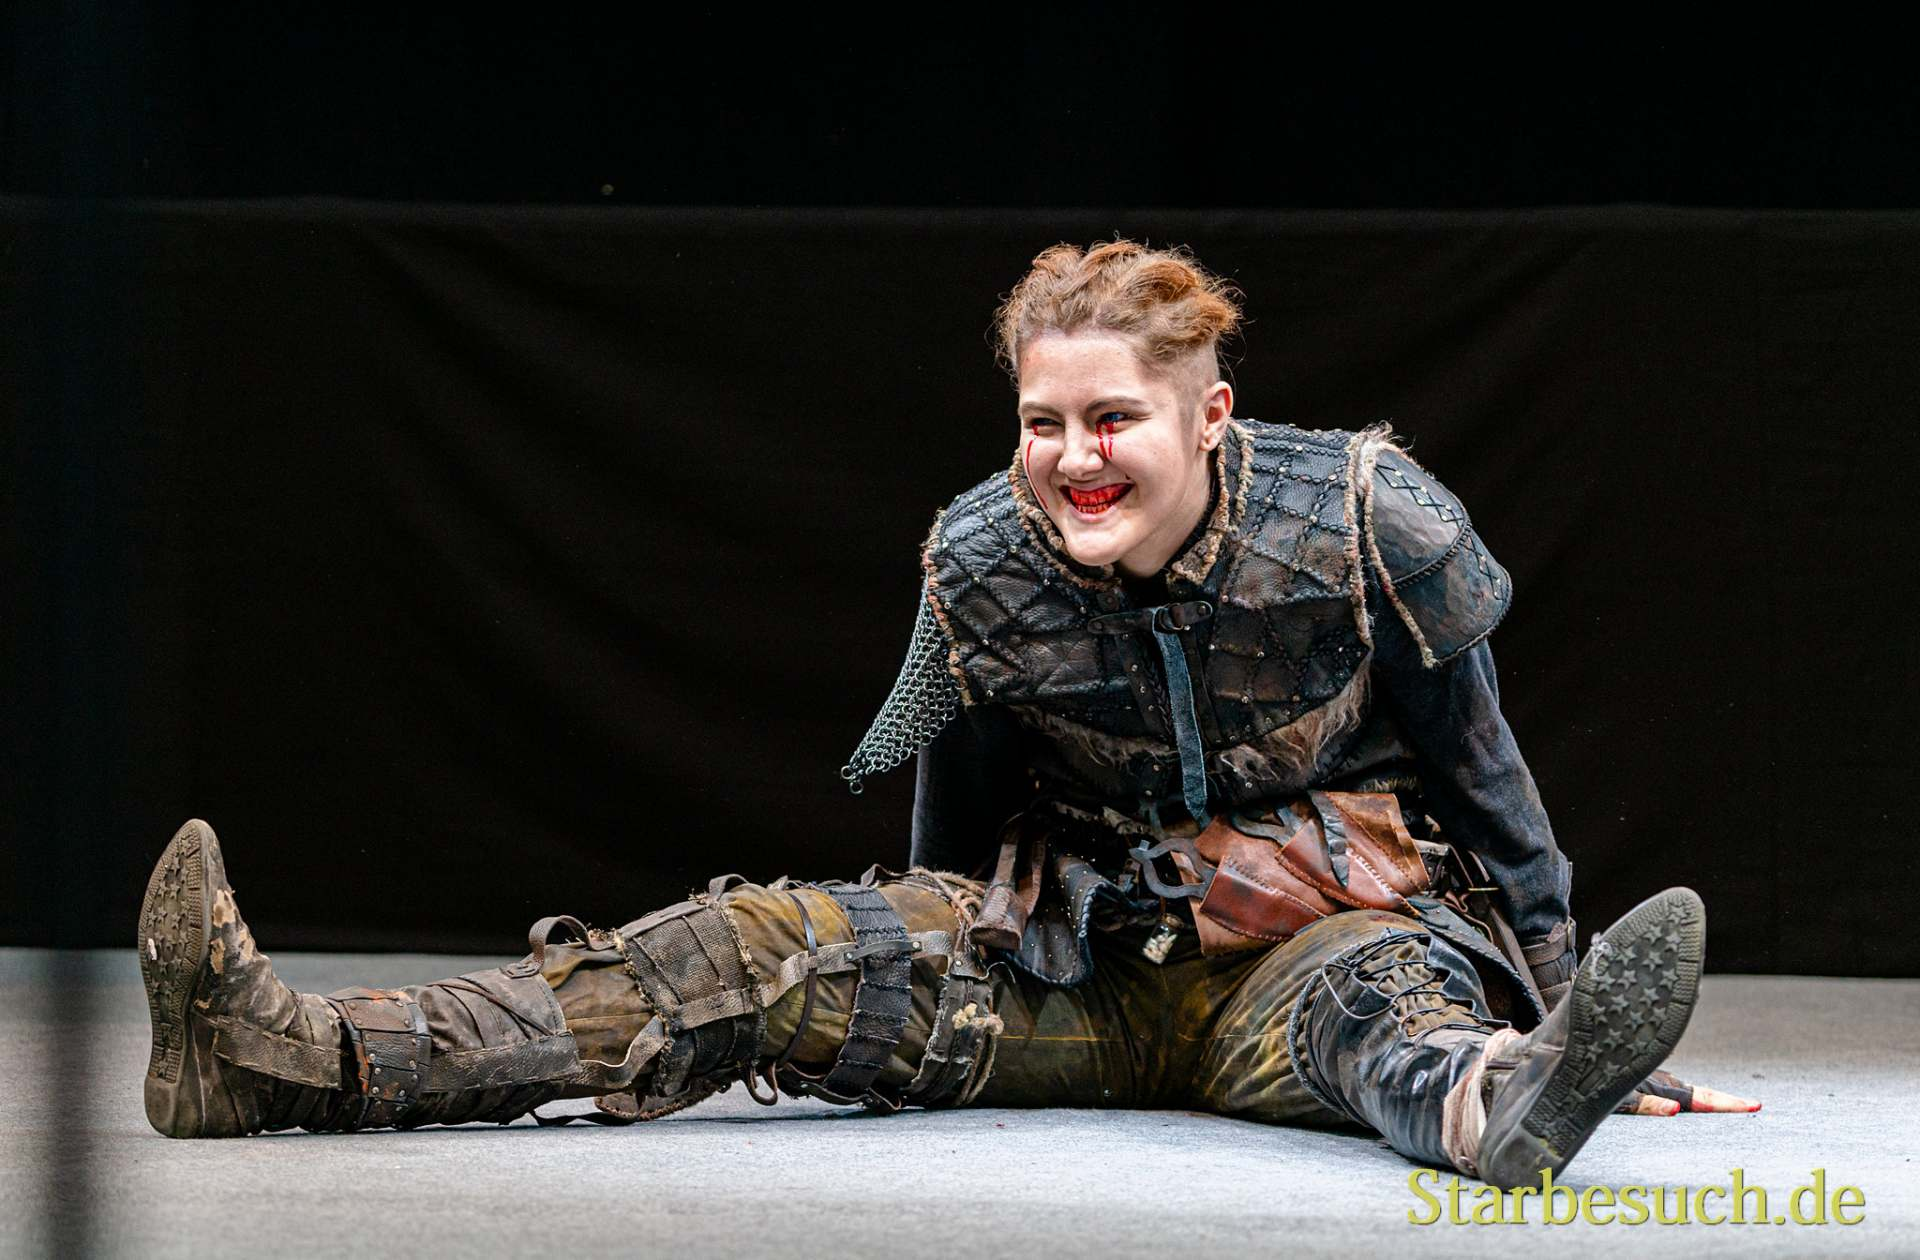 Cosplay Contest #10: The Trashqueen as Ivar the Boneless from Vikings